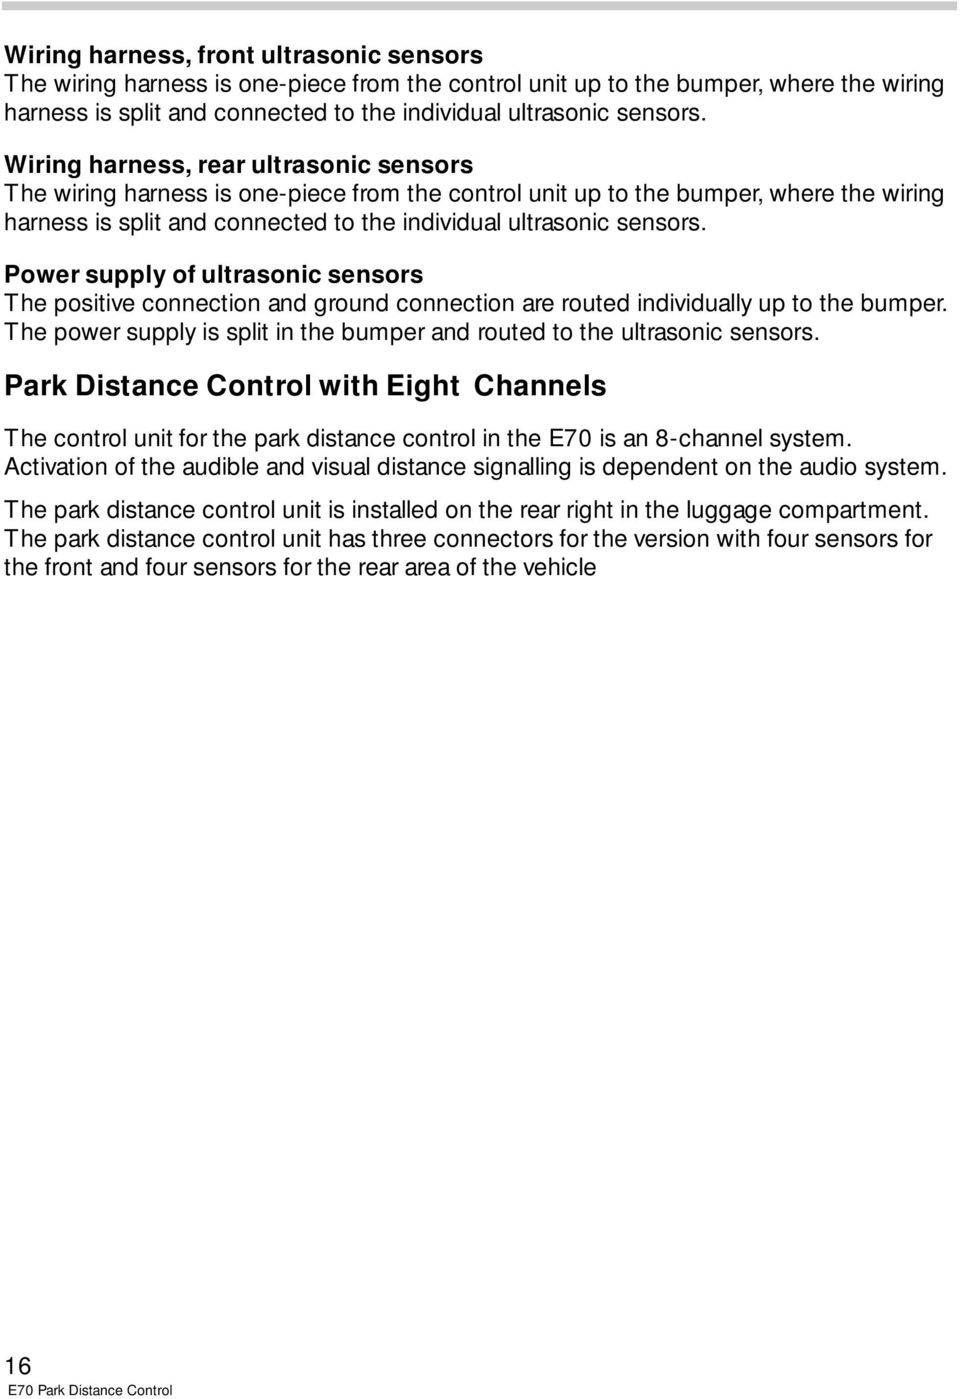 Table Of Contents E70 Park Distance Control Pdc Pdf Radio Wiring Power Supply Ultrasonic Sensors The Positive Connection And Ground Are Routed Individually Up To